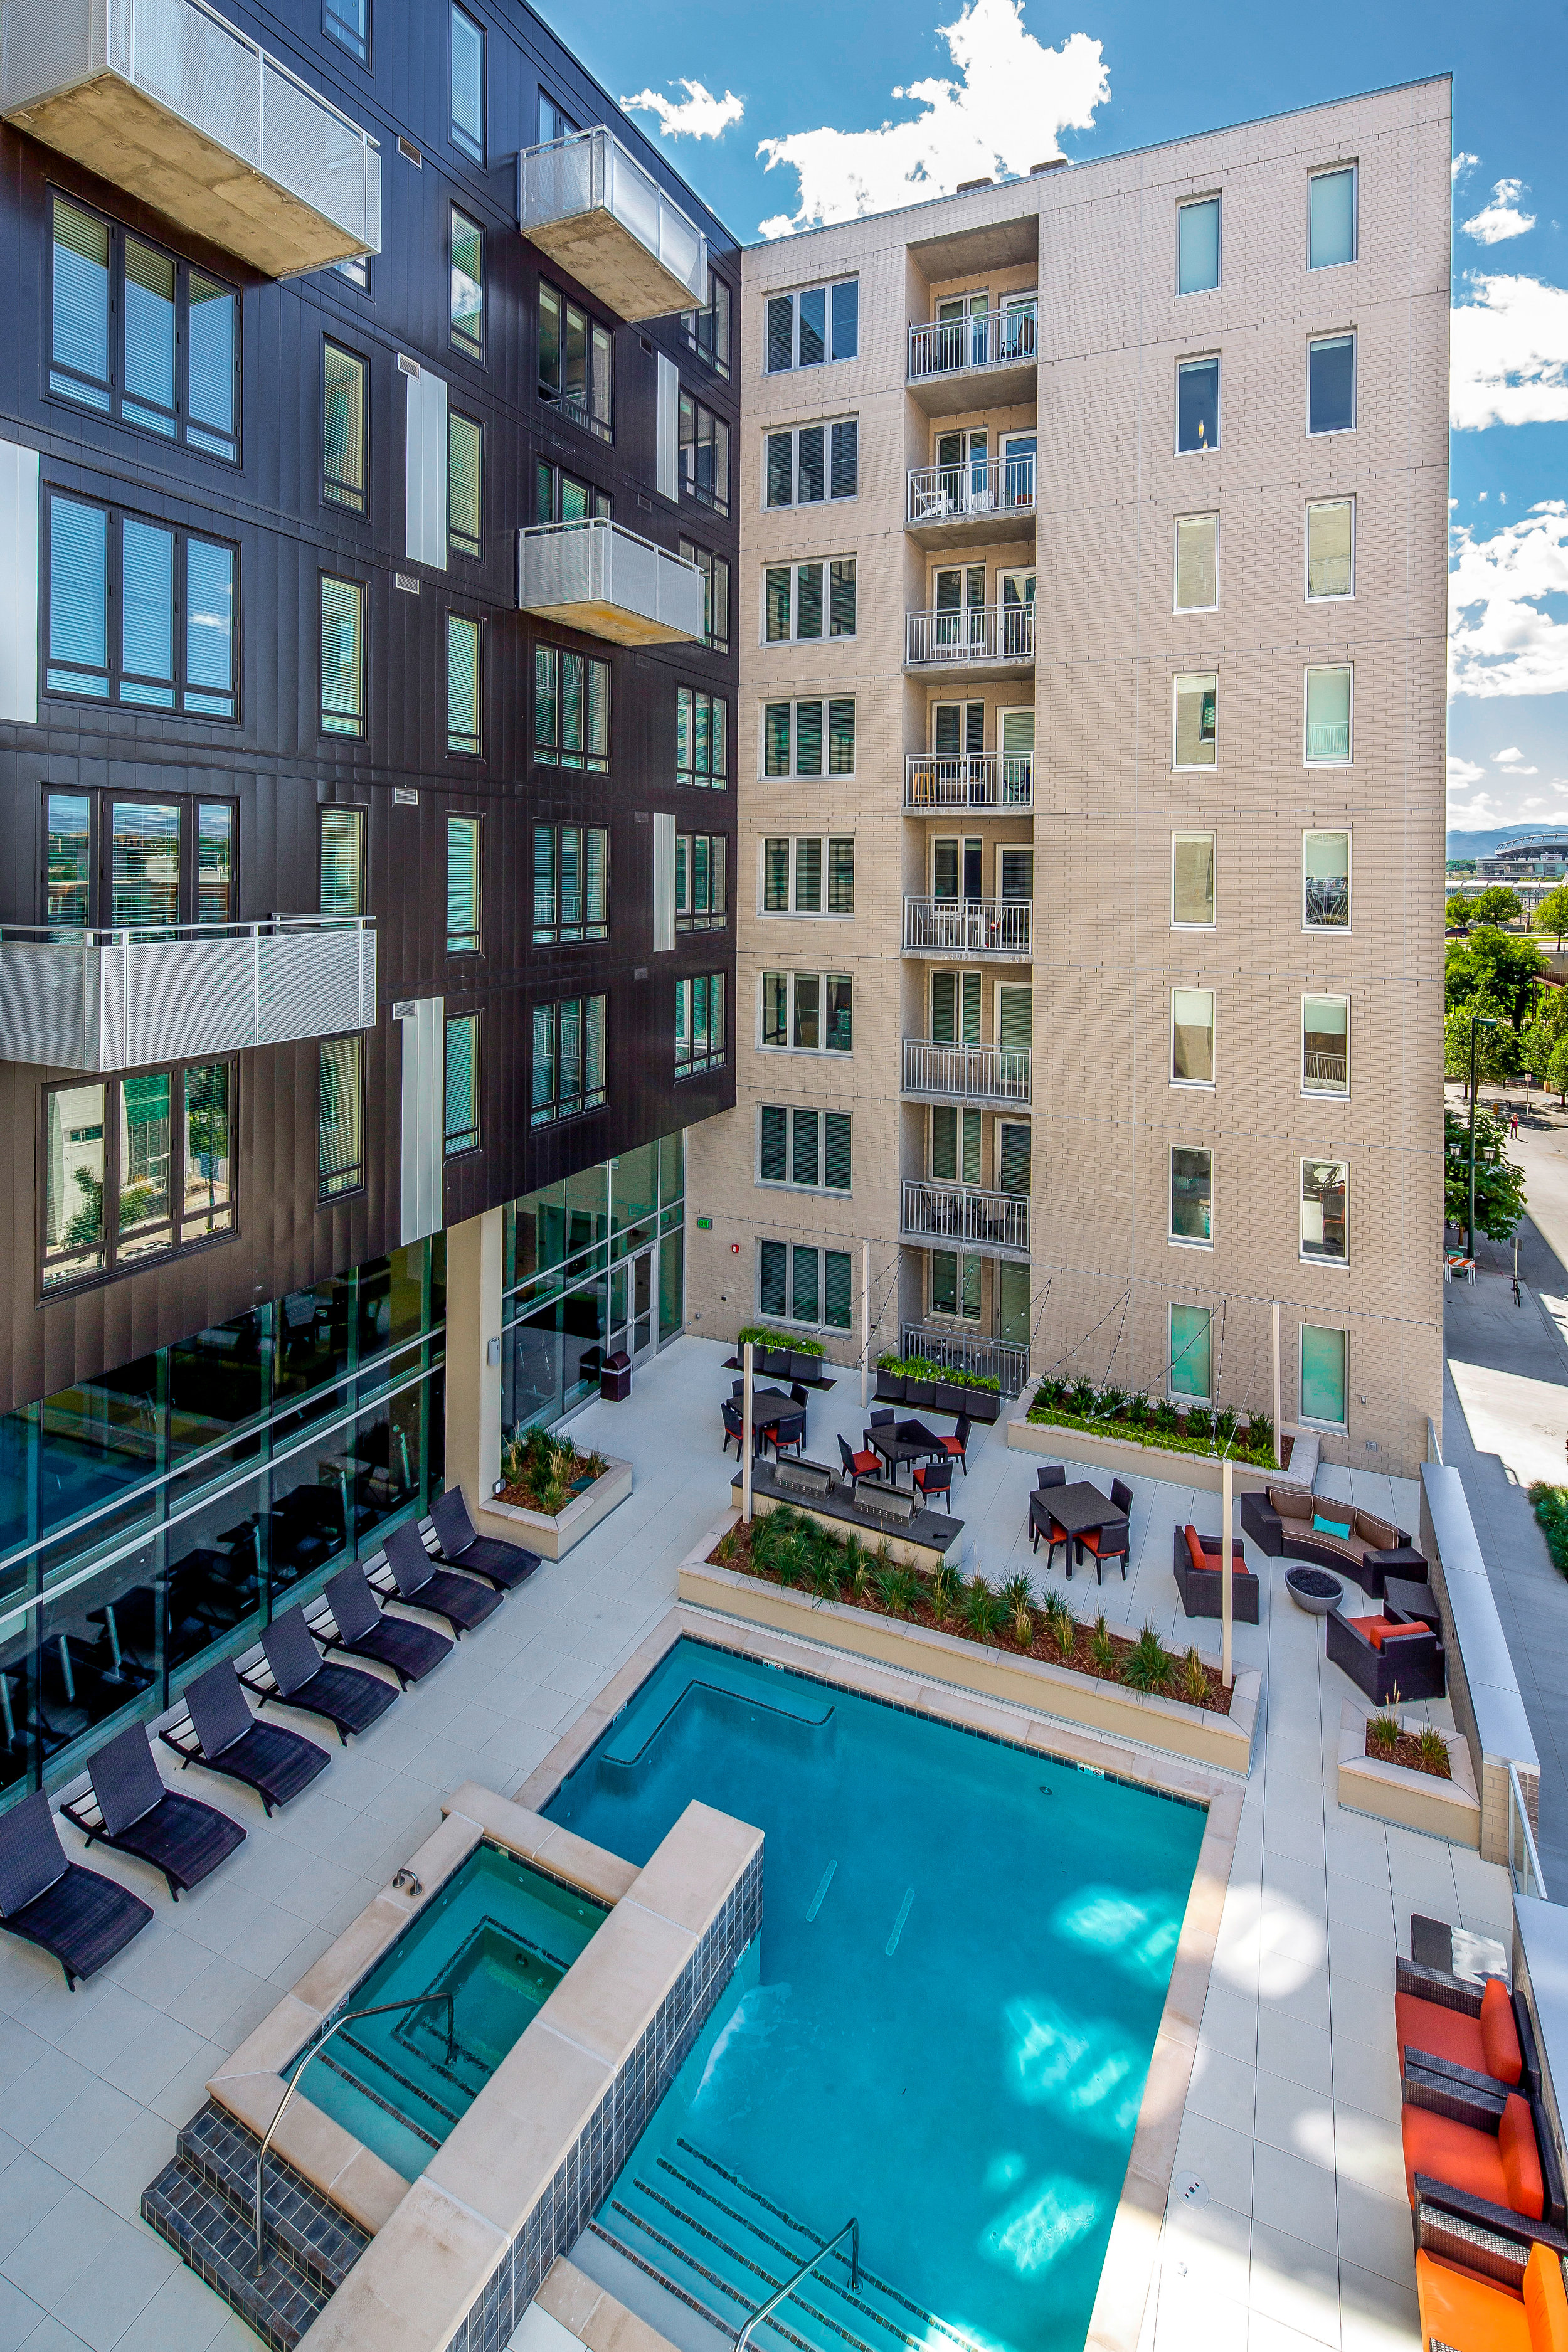 """<img src="""" studioINSITE_The_Verve_Pool_Deck-2 """"alt=""""Urban Living, Multifamily Courtyard, Amenity Deck, Fire Pit, Grill Area, Shade Structure, Outdoor Garden,  Landscape Architecture, Luxury Living, the Douglas, Denver, CO, Colorado Courtyards, Amenity Spaces, Great Courtyard Designs"""" title=""""The Verve""""/>"""